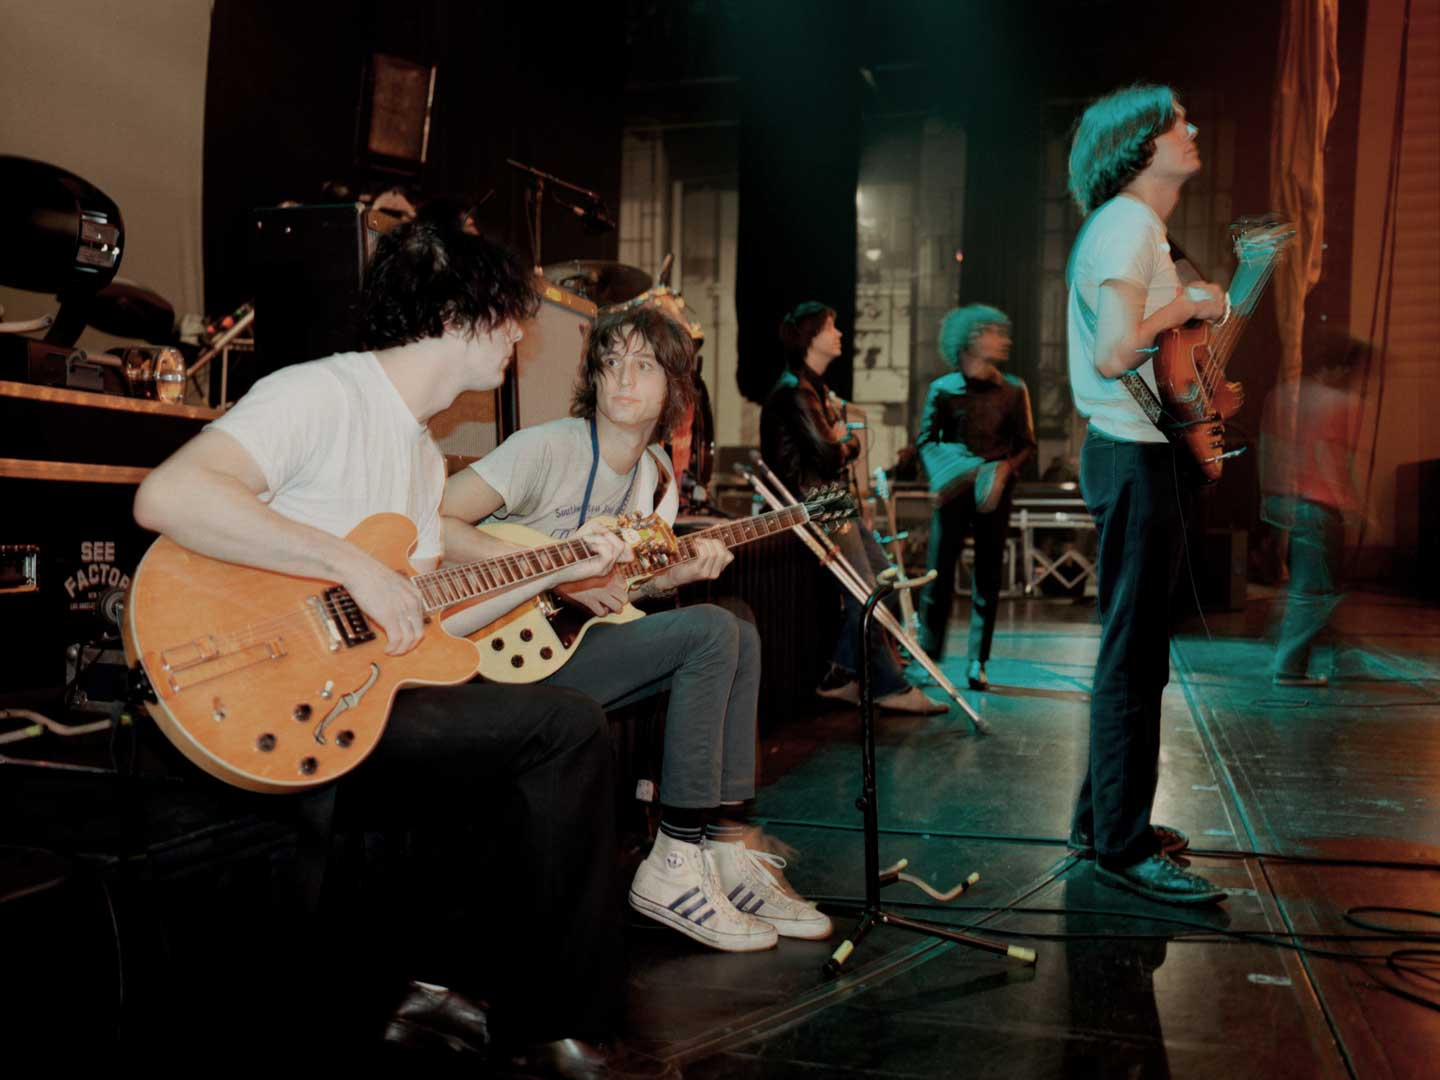 The Strokes rehearsing with Jack White of The White Stripes